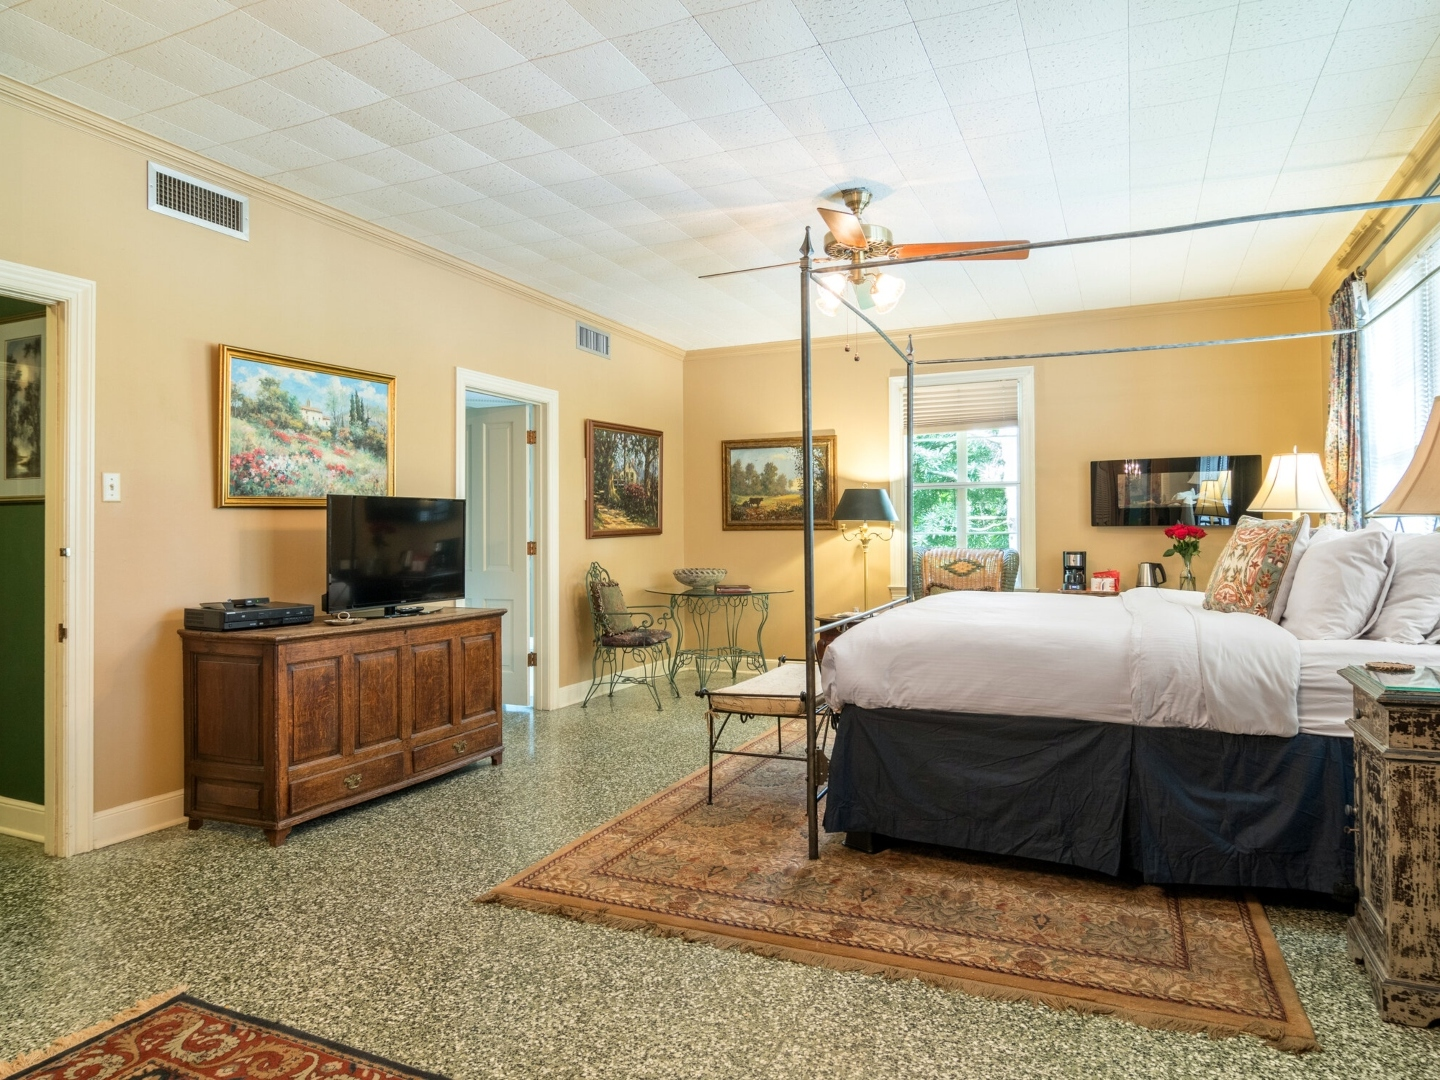 Baton Rouge Bed and Breakfast